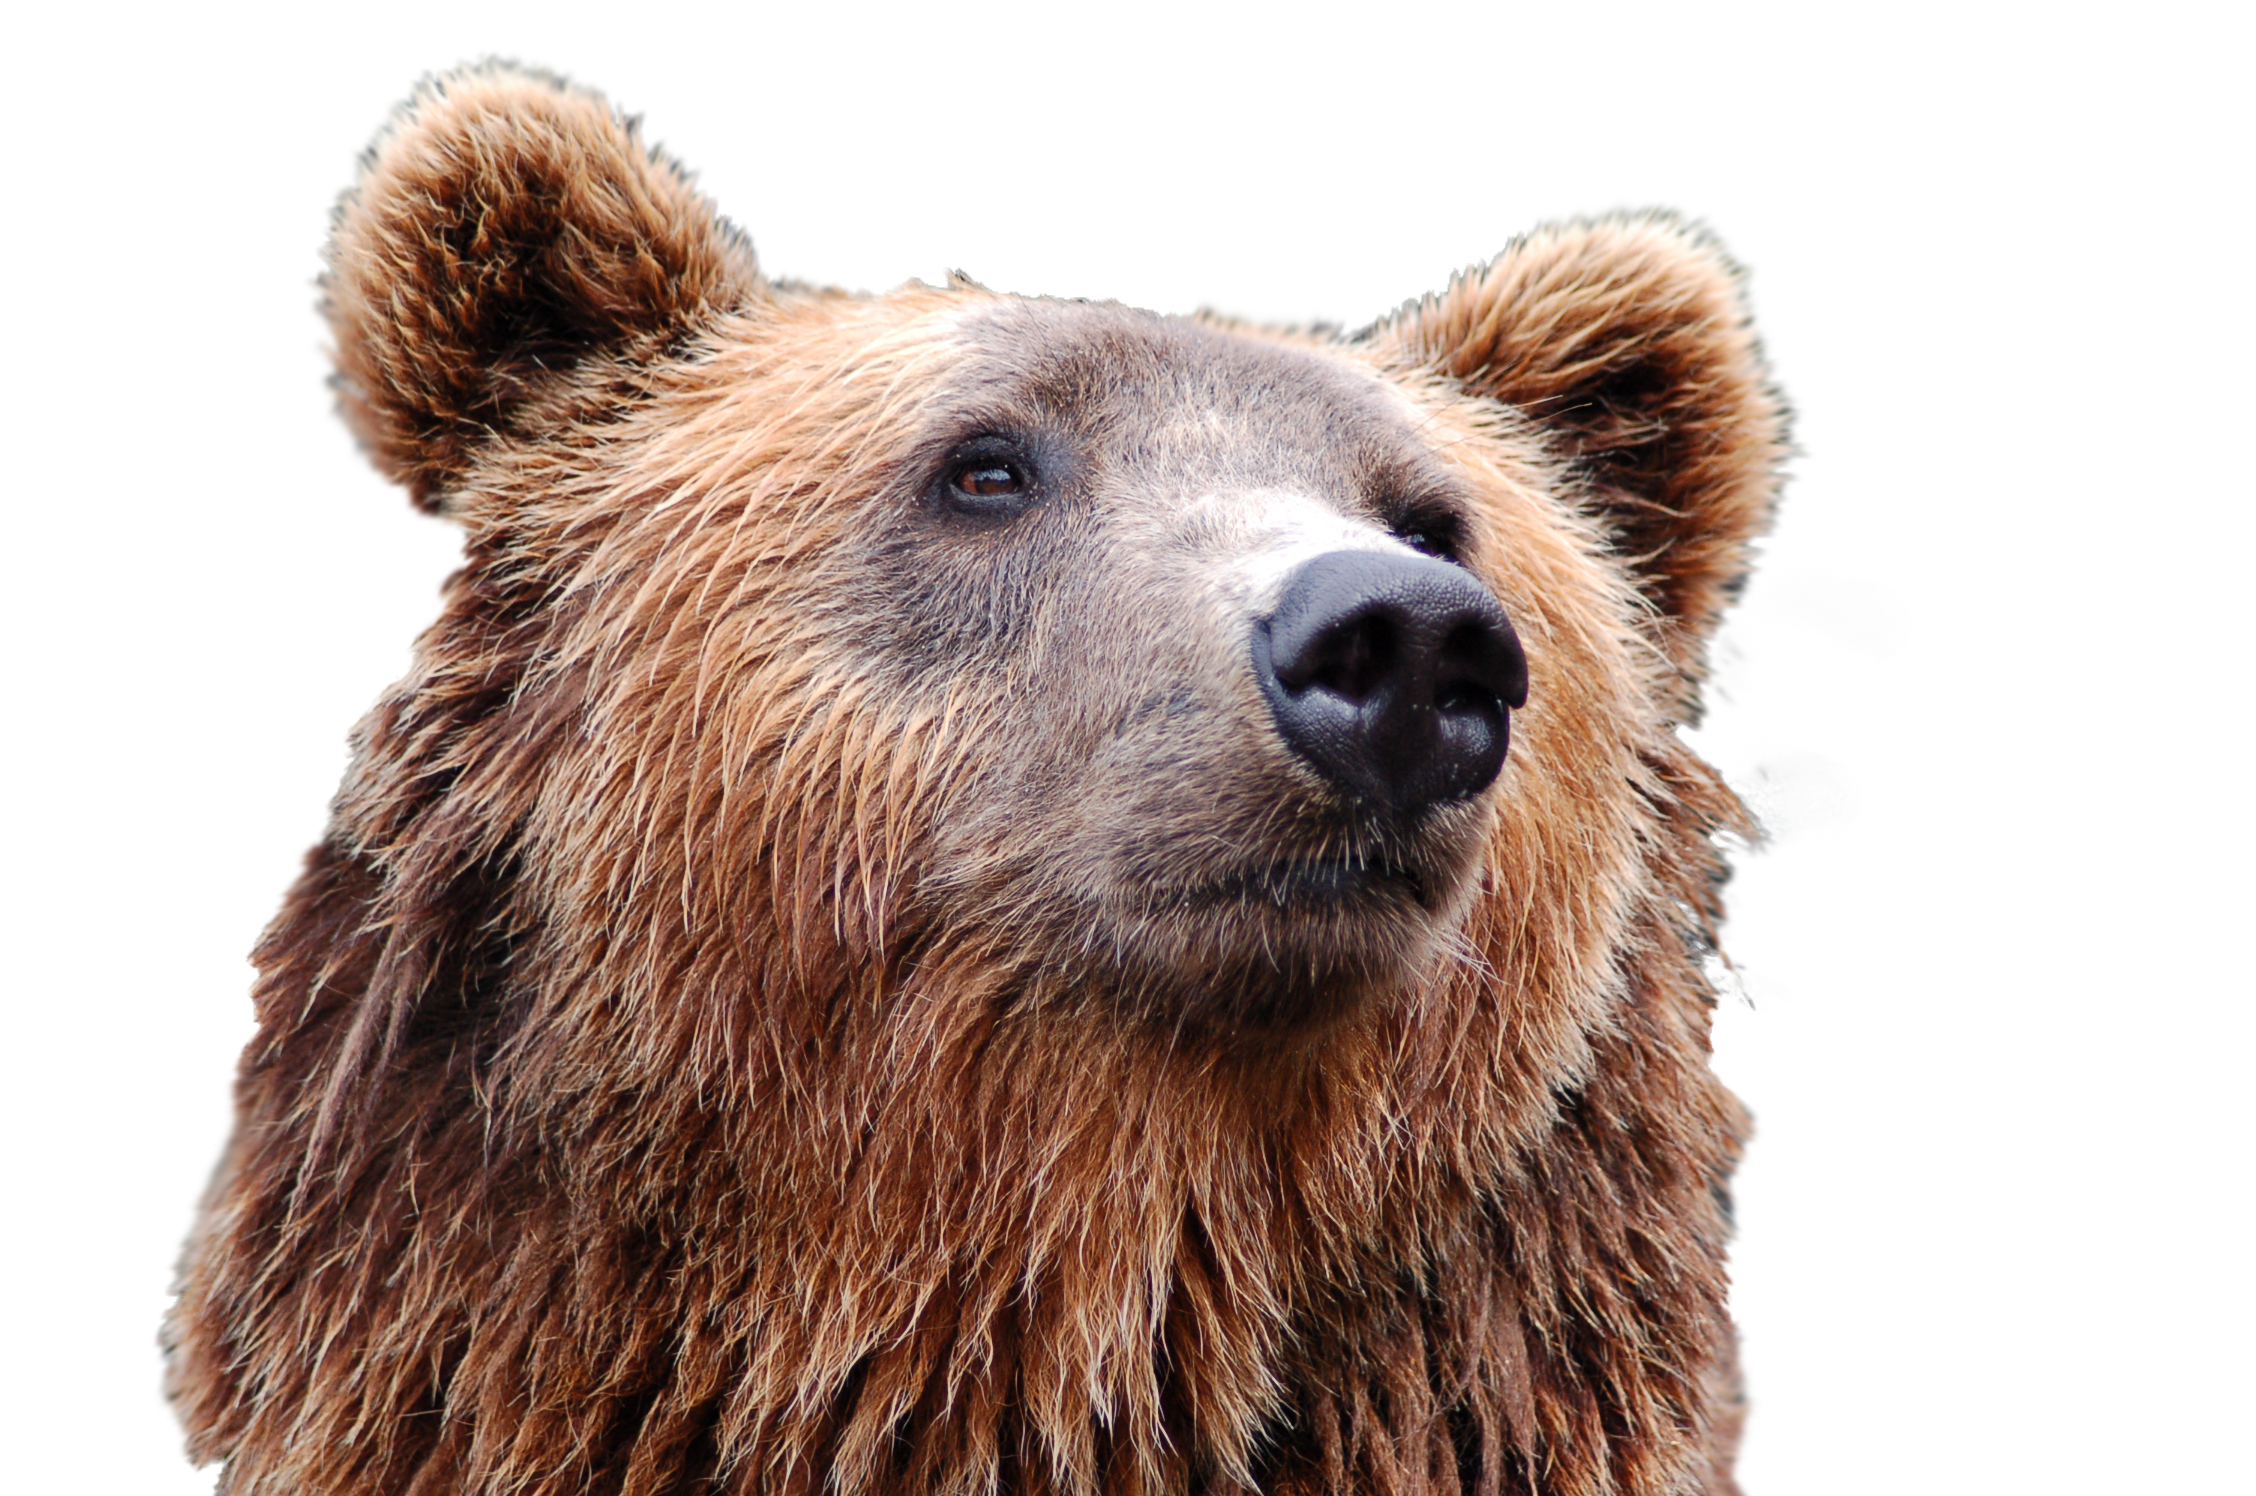 Head clipart brown bear. Png image purepng free